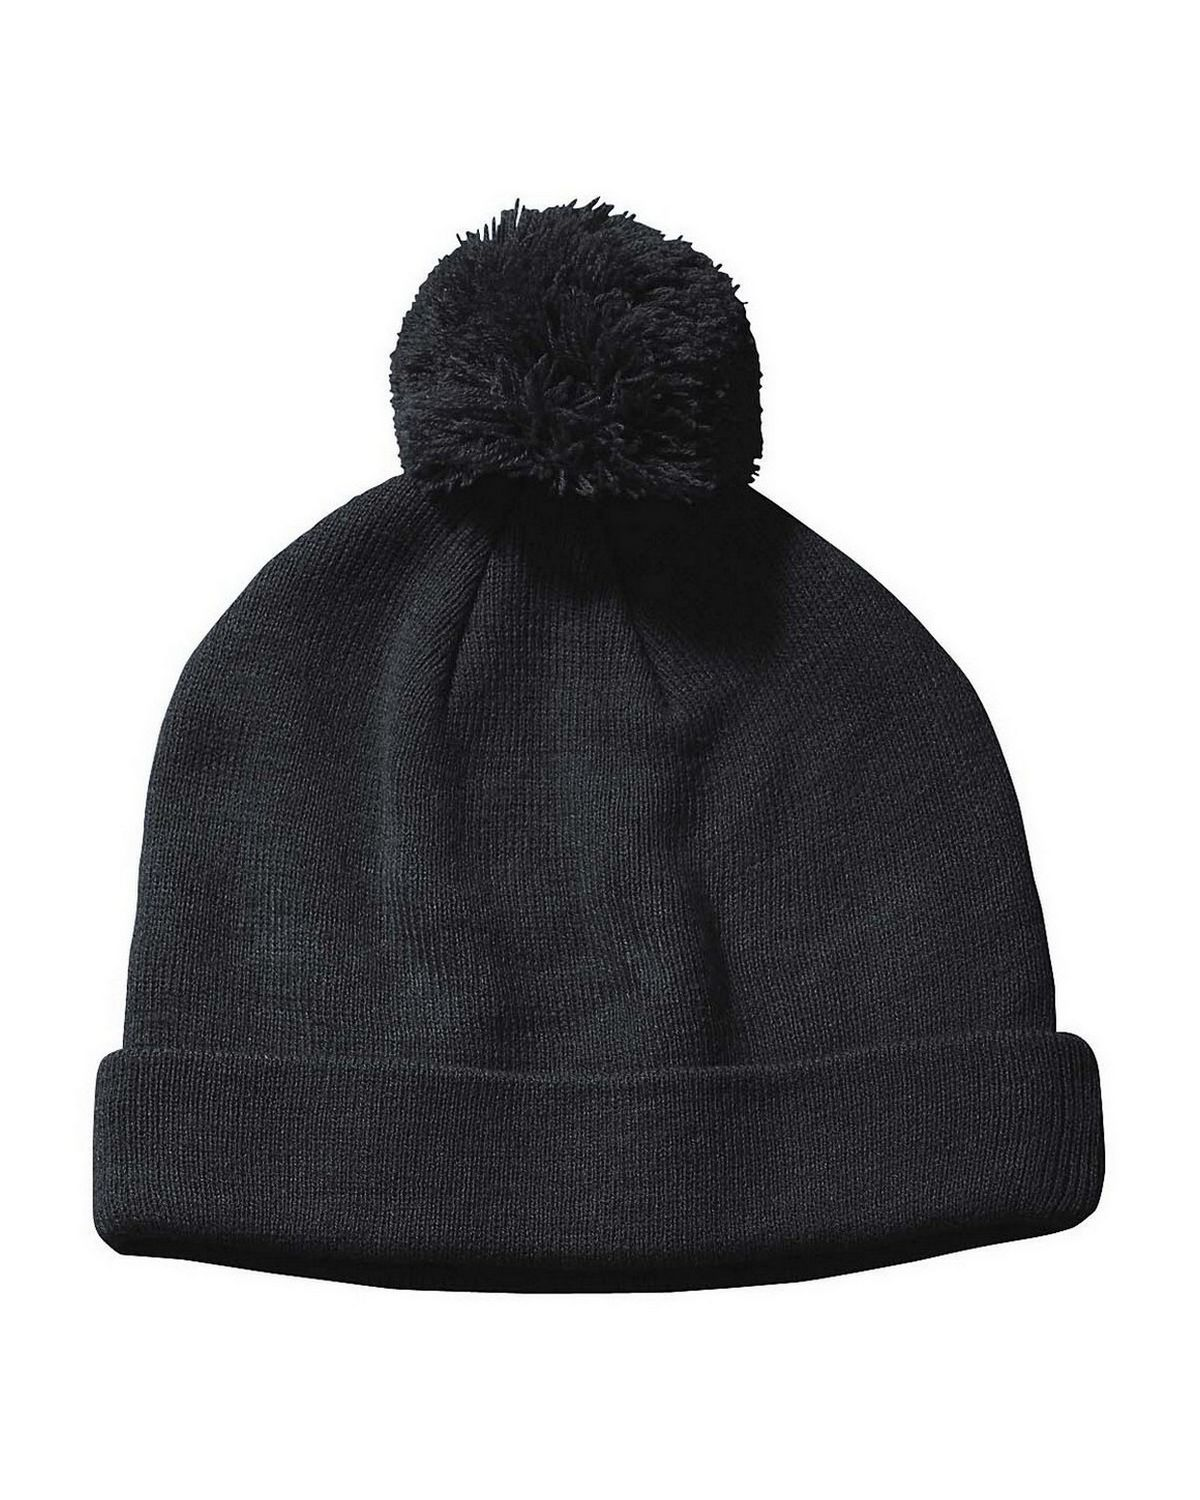 Big Accessories BX028 Knit Pom Beanie - Grey - One Size BX028